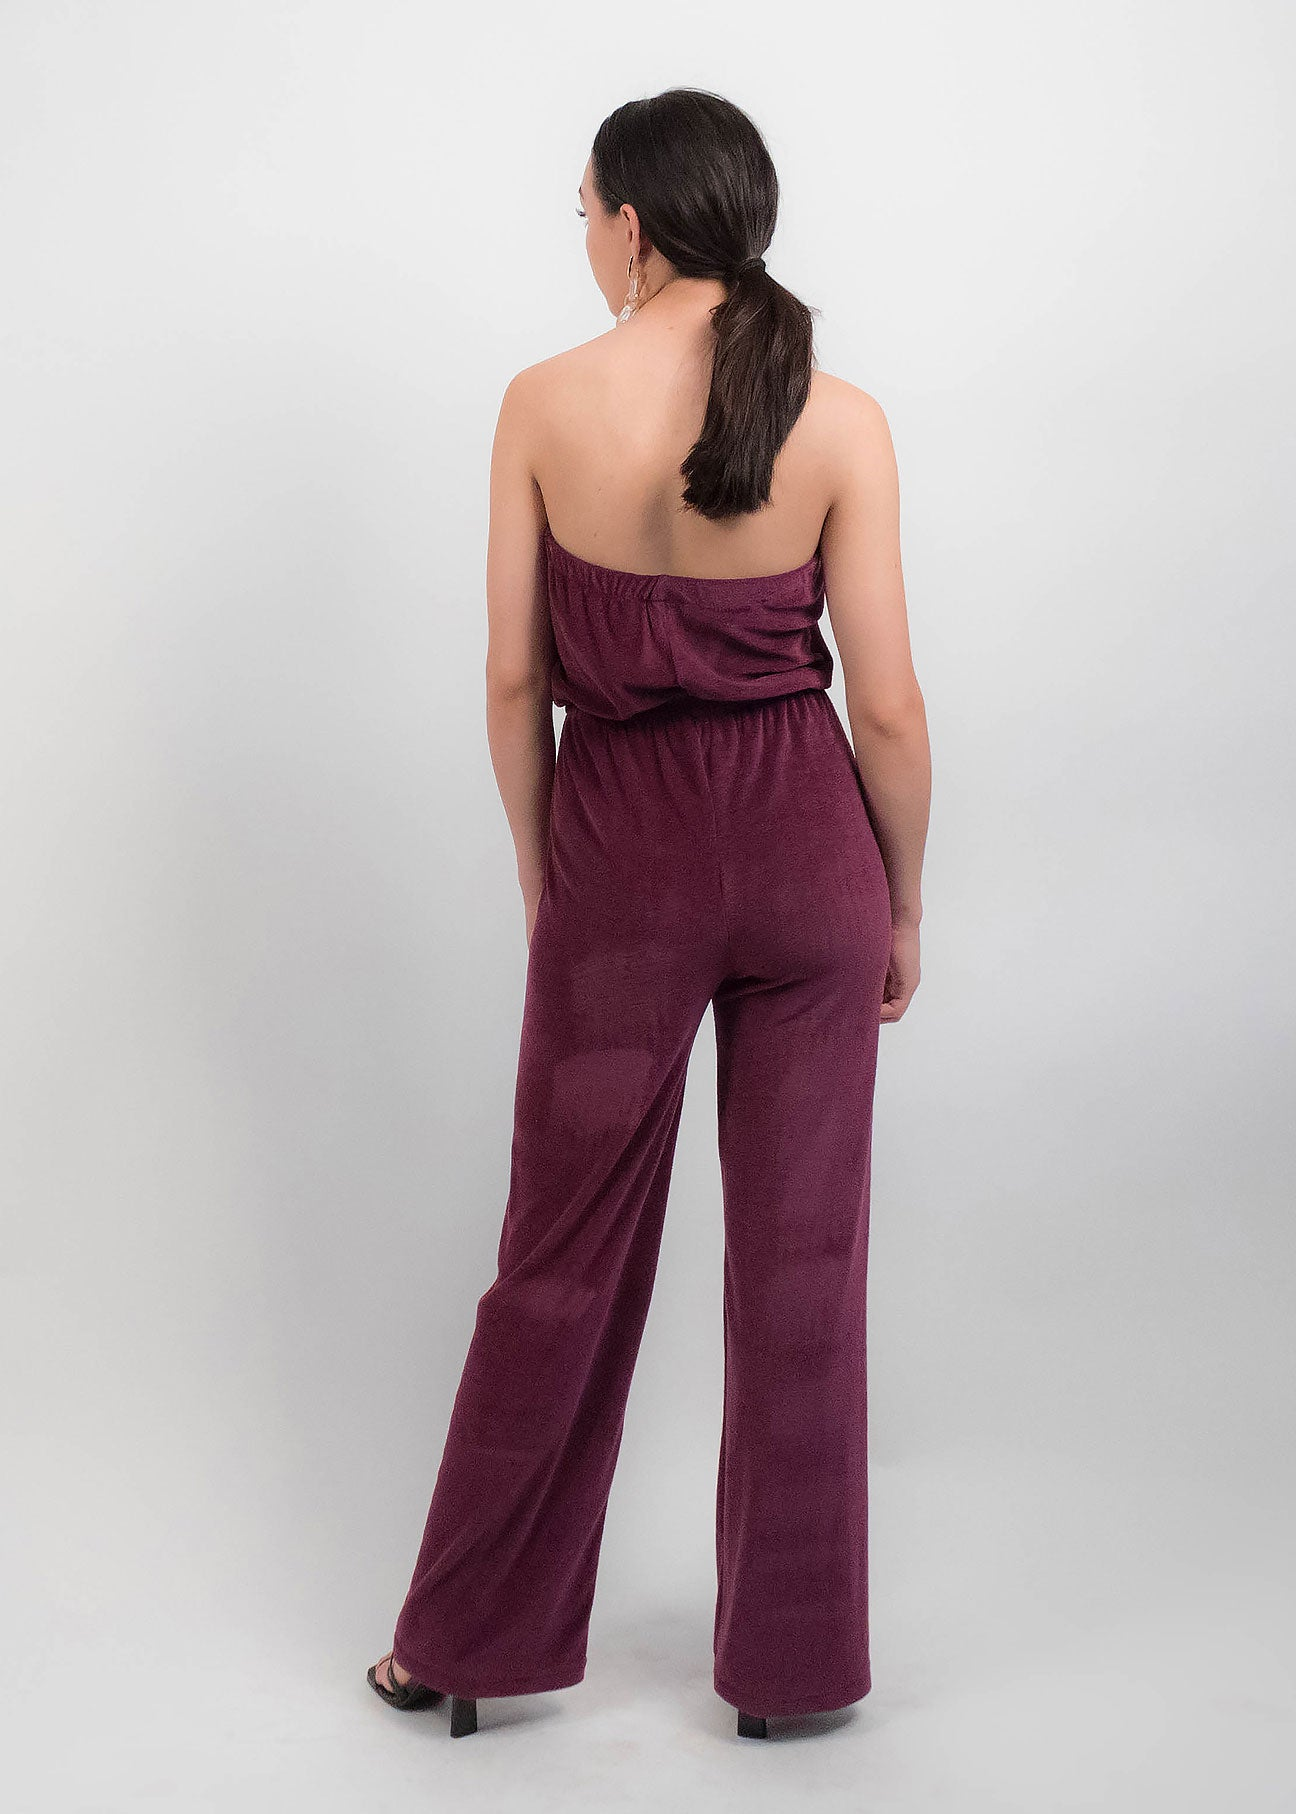 70s Terry-Cloth Jumpsuit